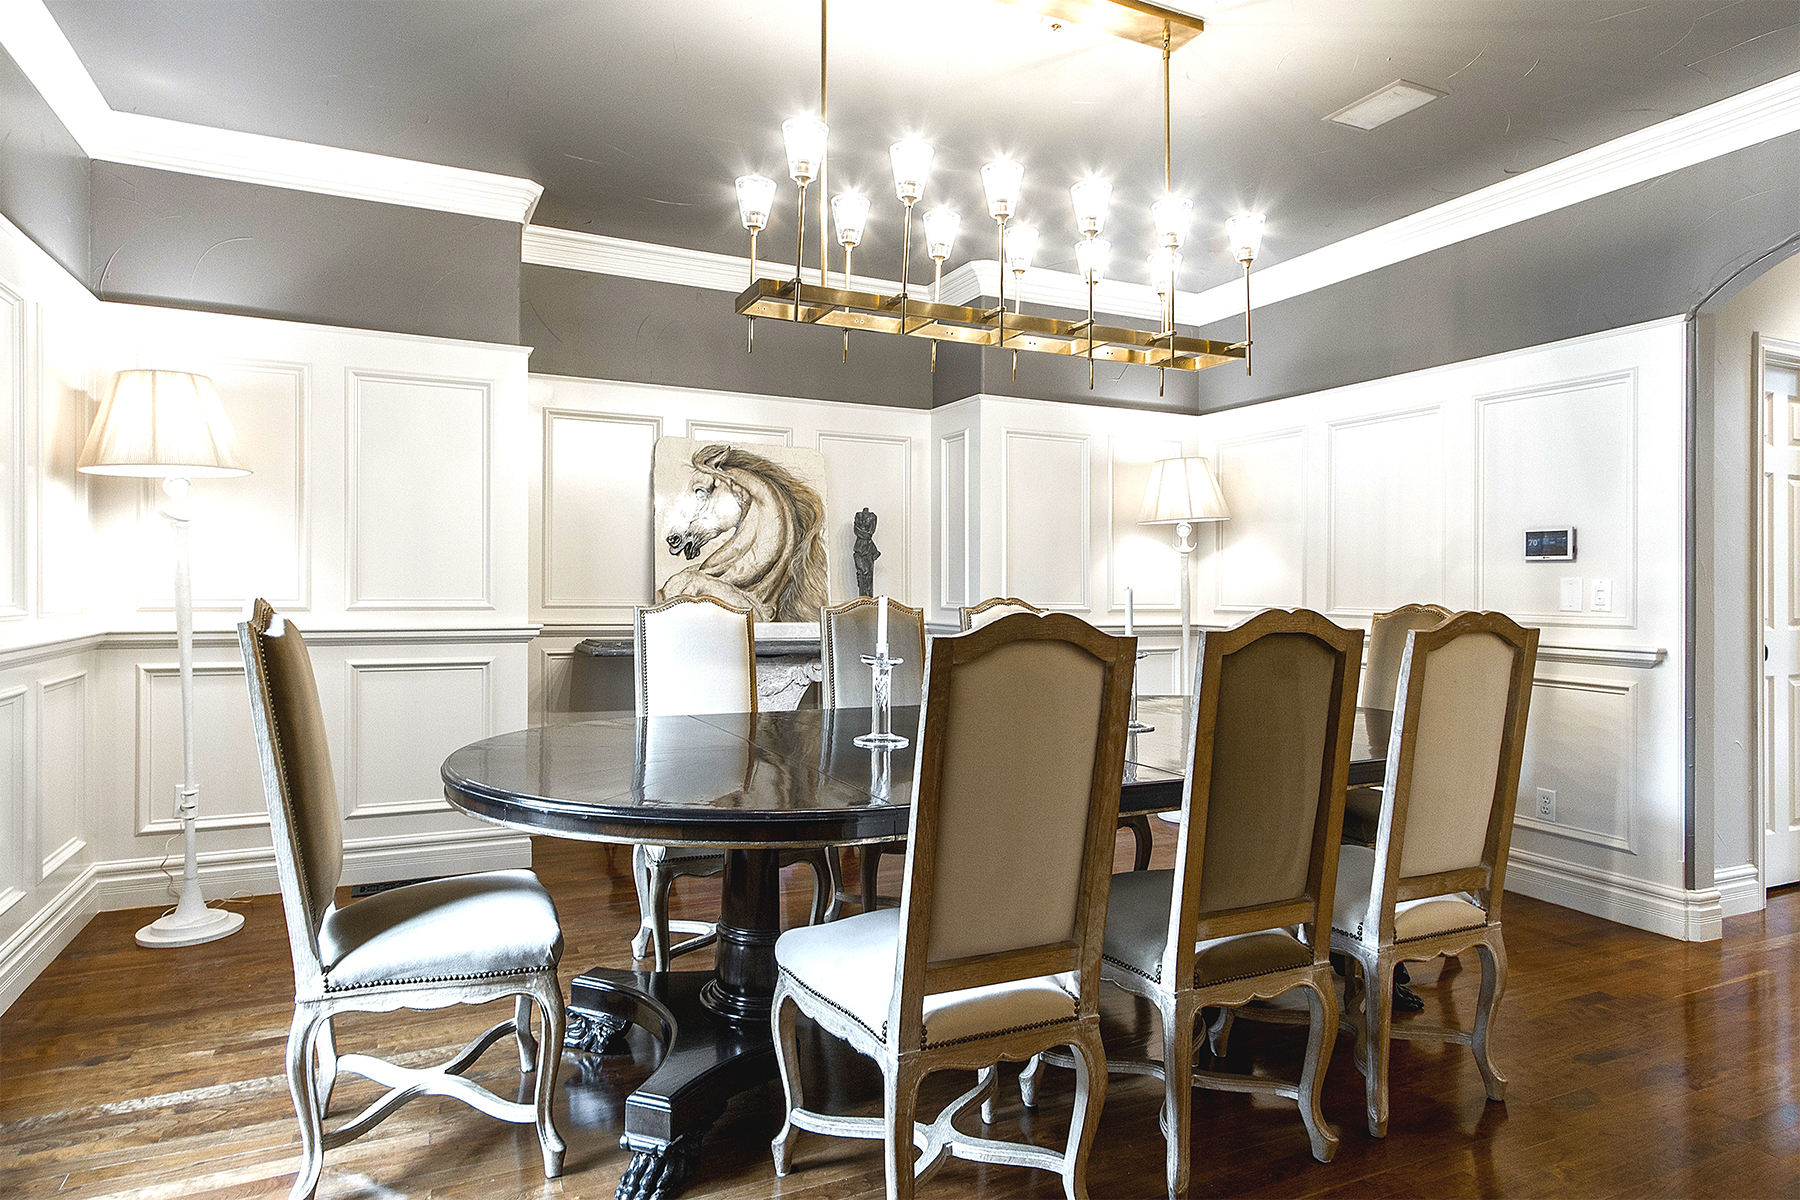 Dining-Room_1800x1200_2813008-edit.png